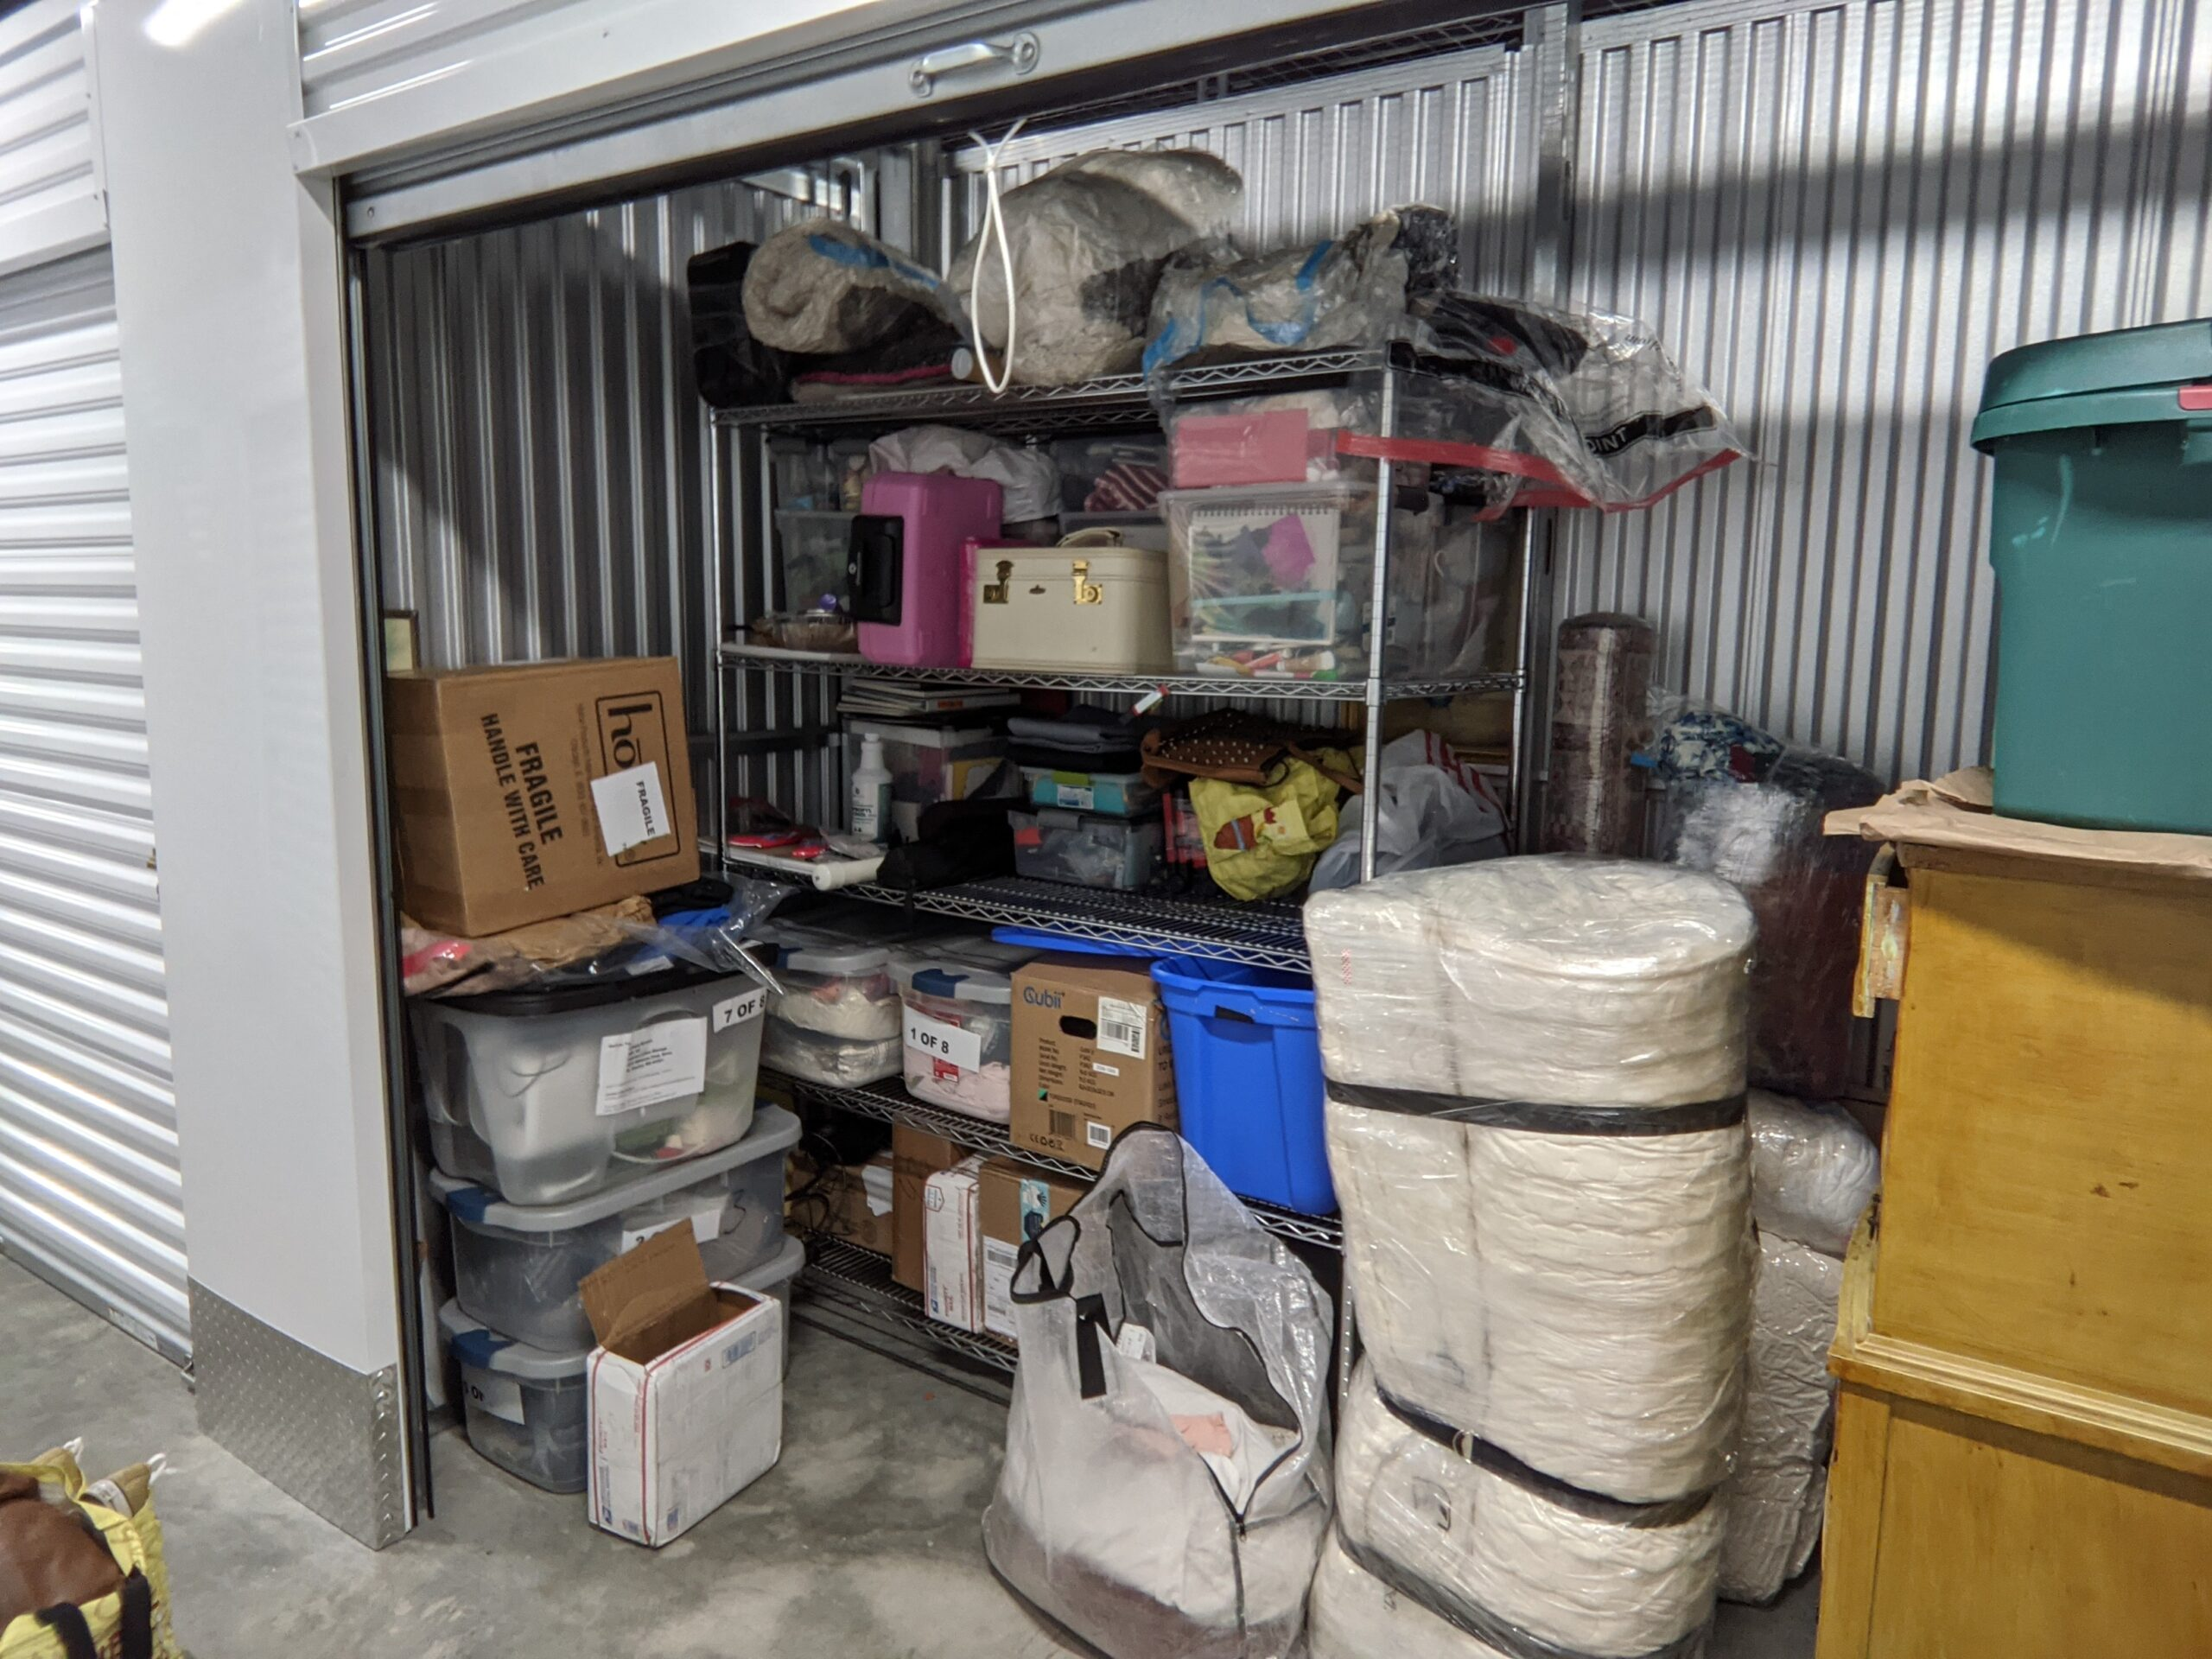 A rented storage unit filled with personal belongings.